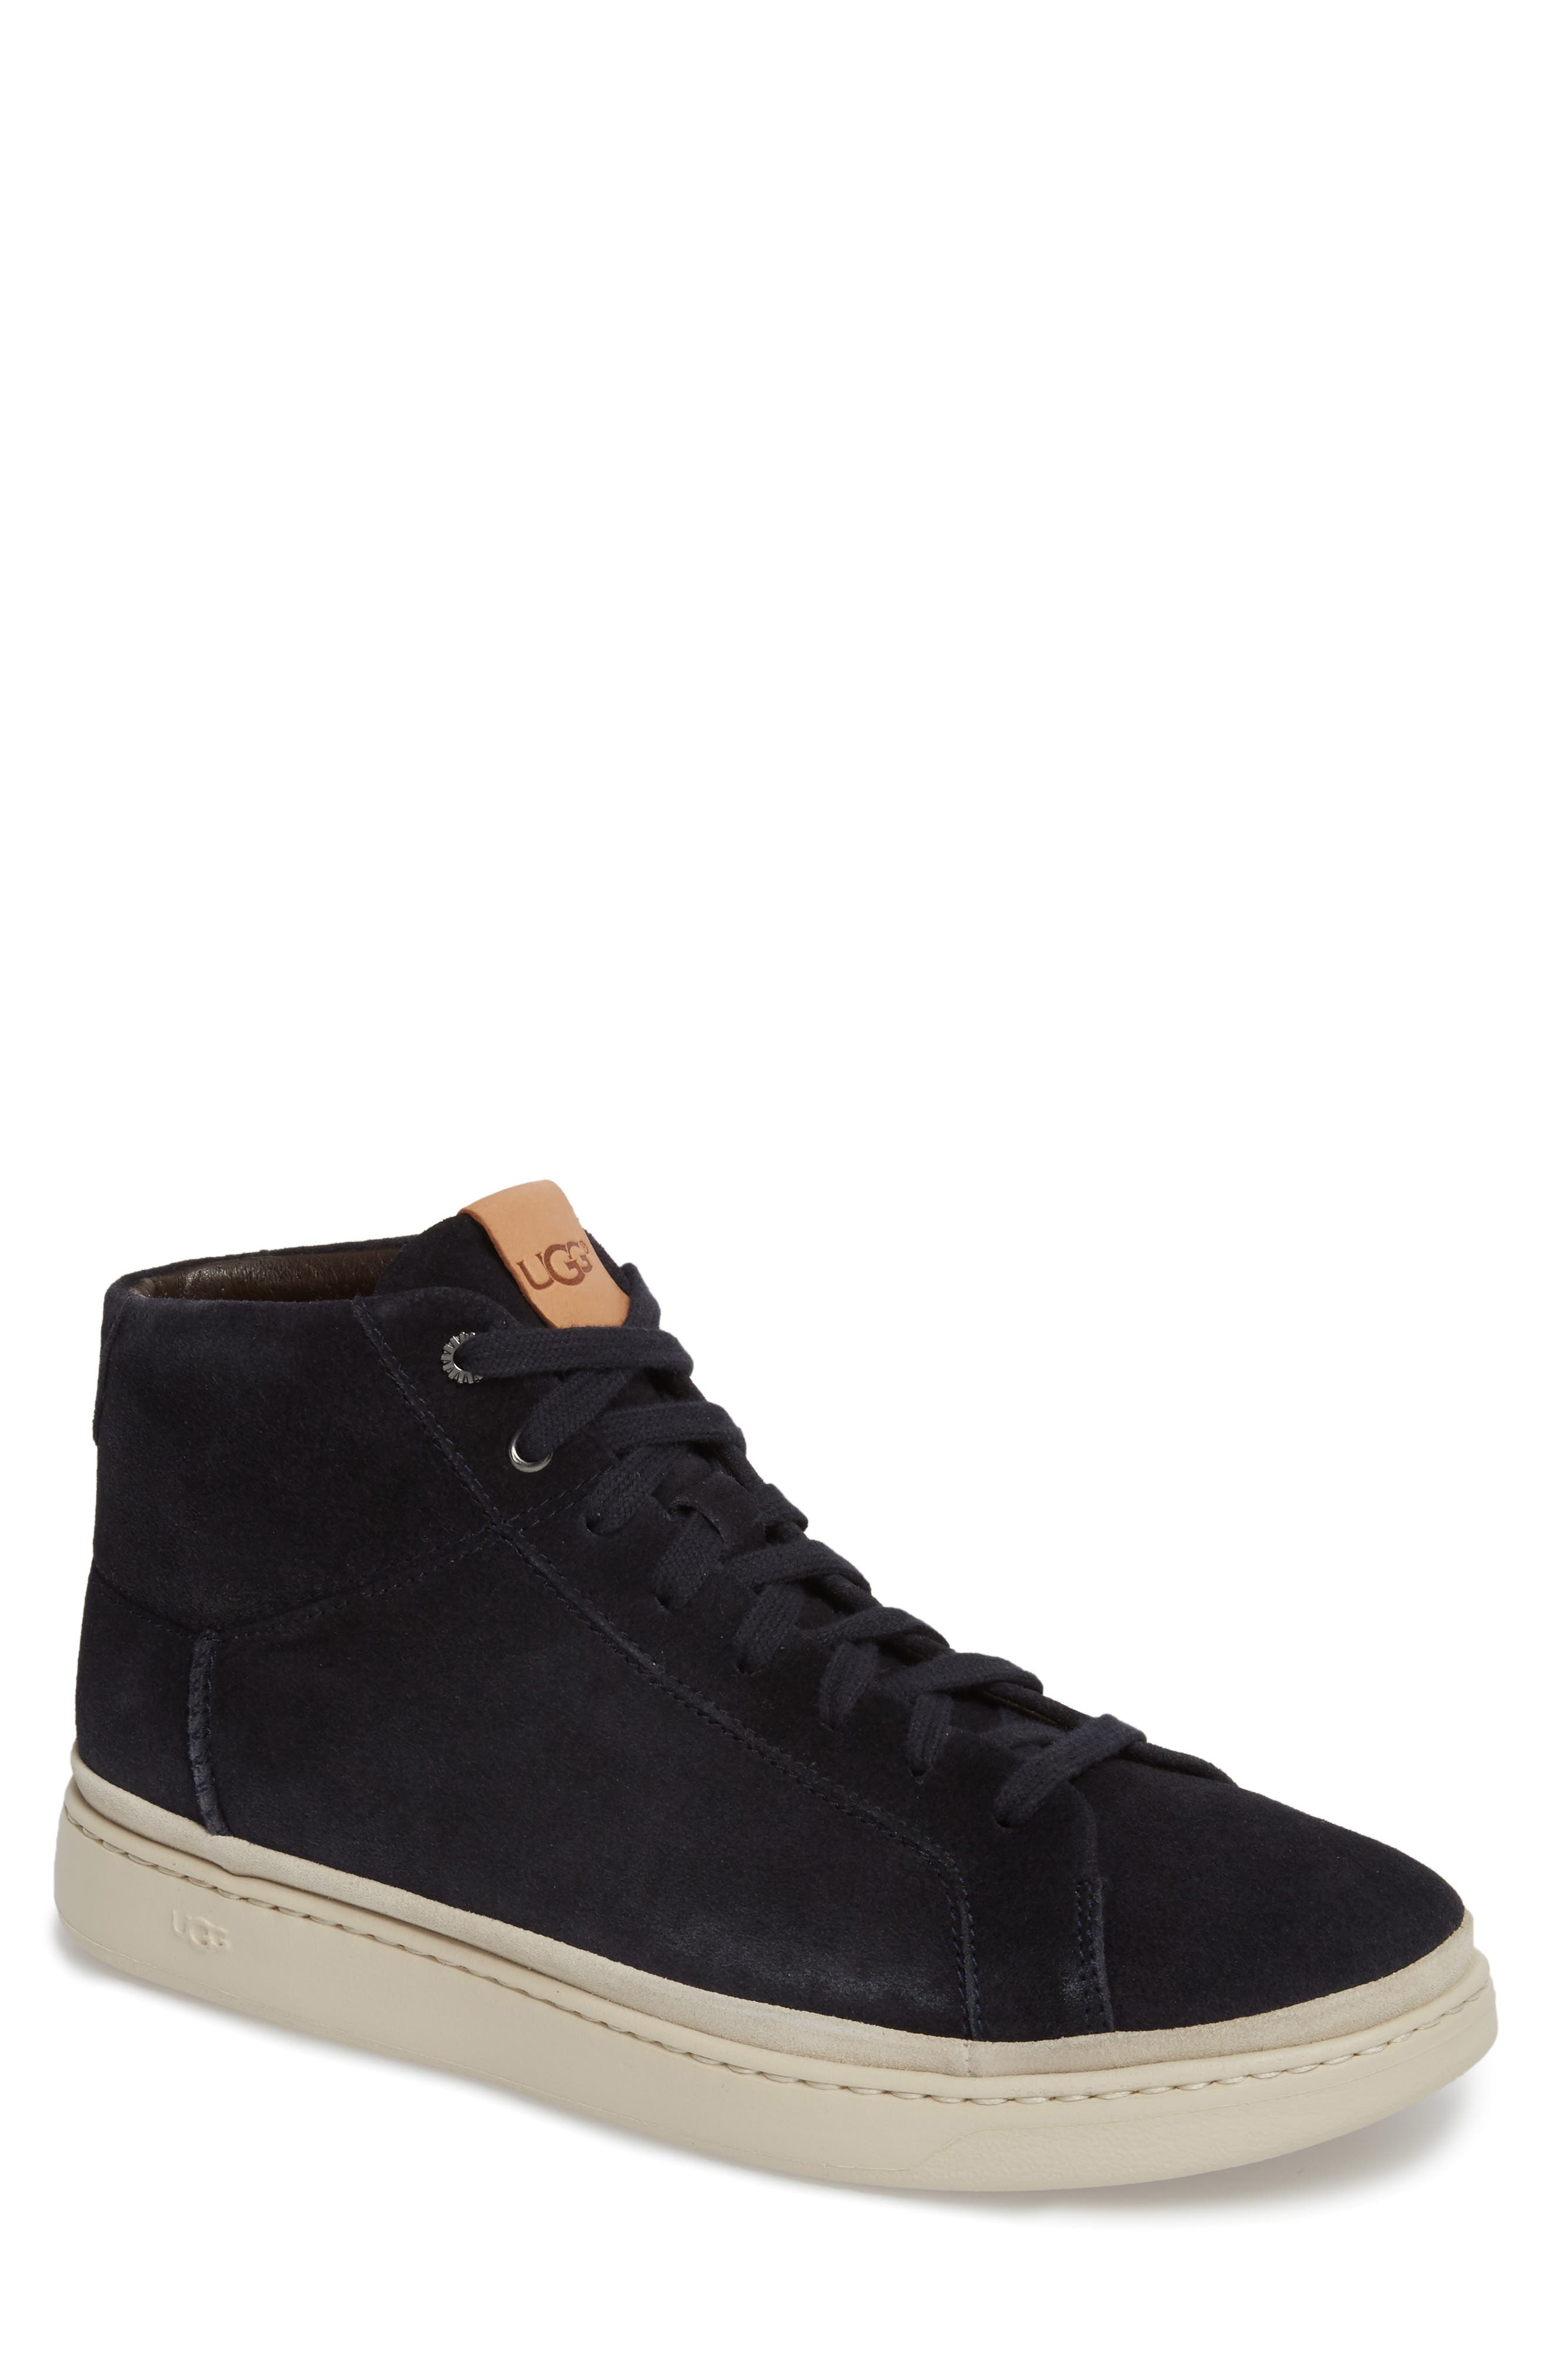 Ugg Cali High Top Sneaker, Blue